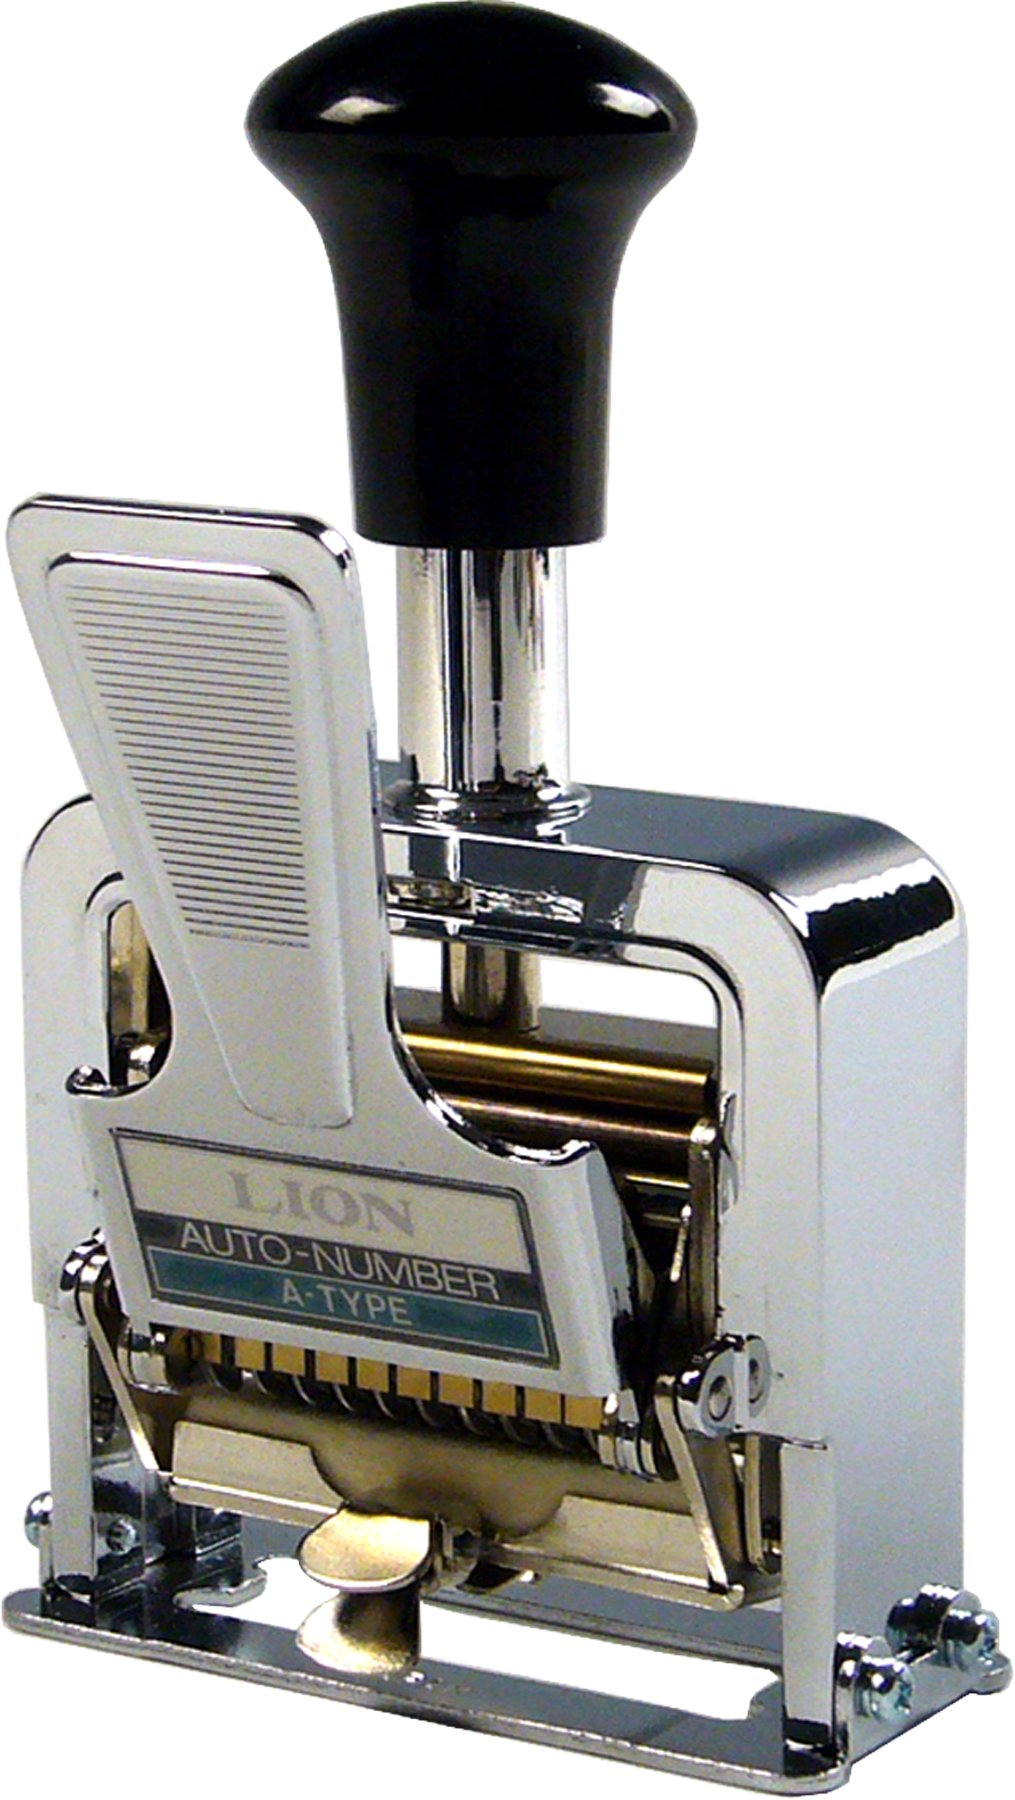 Lion Pro-Line Heavy-Duty Lever-Action Numbering Machine, 10-Wheel, 1 Numbering Machine (A-01)